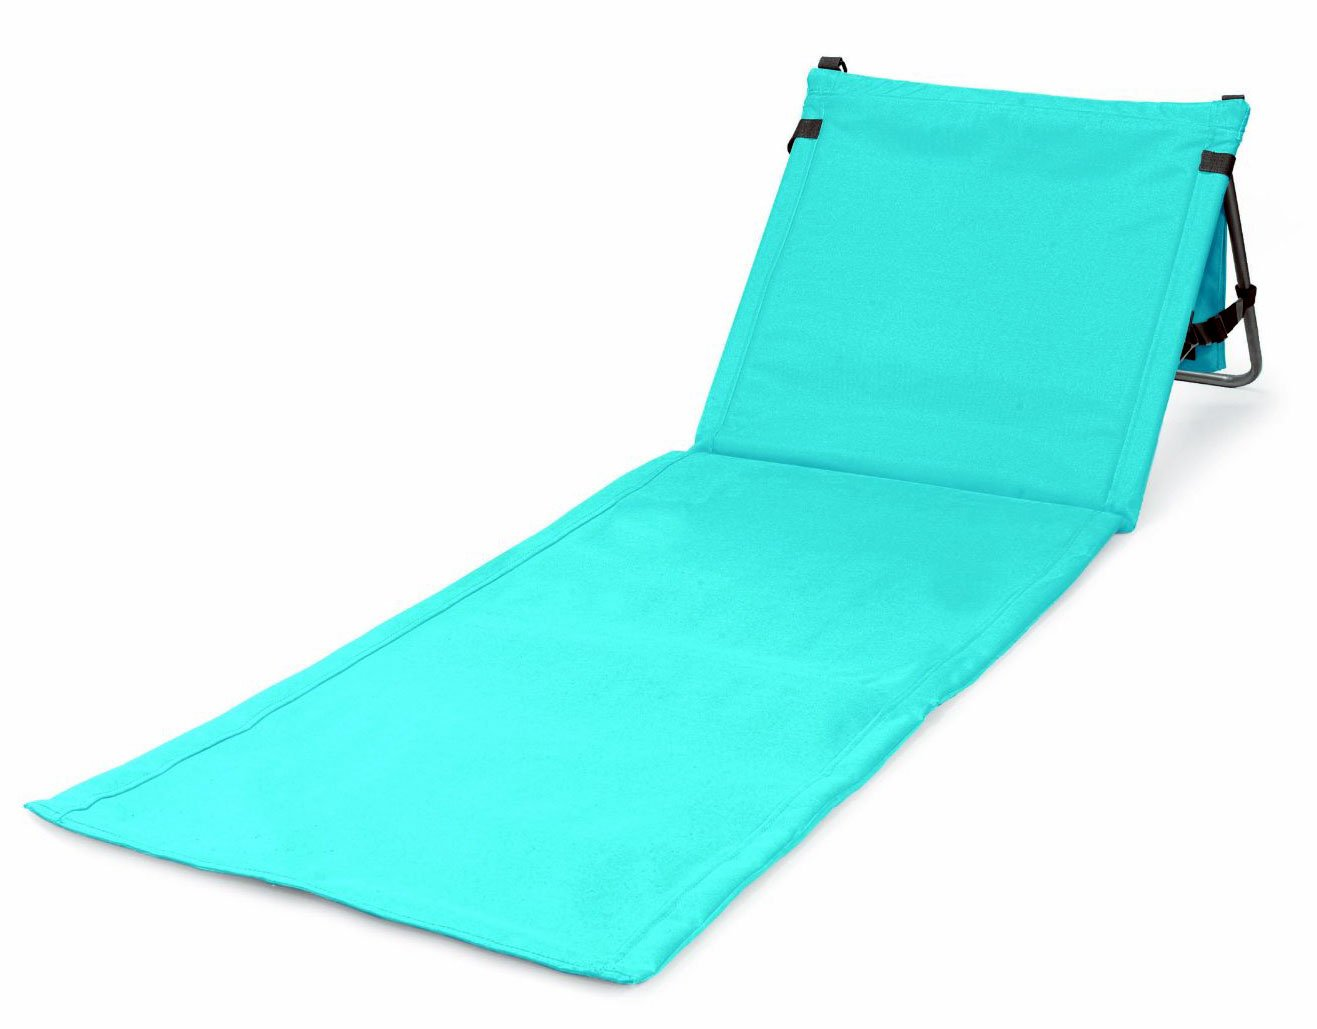 amazon com extra thick portable beach mat lounge chair and tote by rh amazon com Reclining Beach Mat beach mat chairs